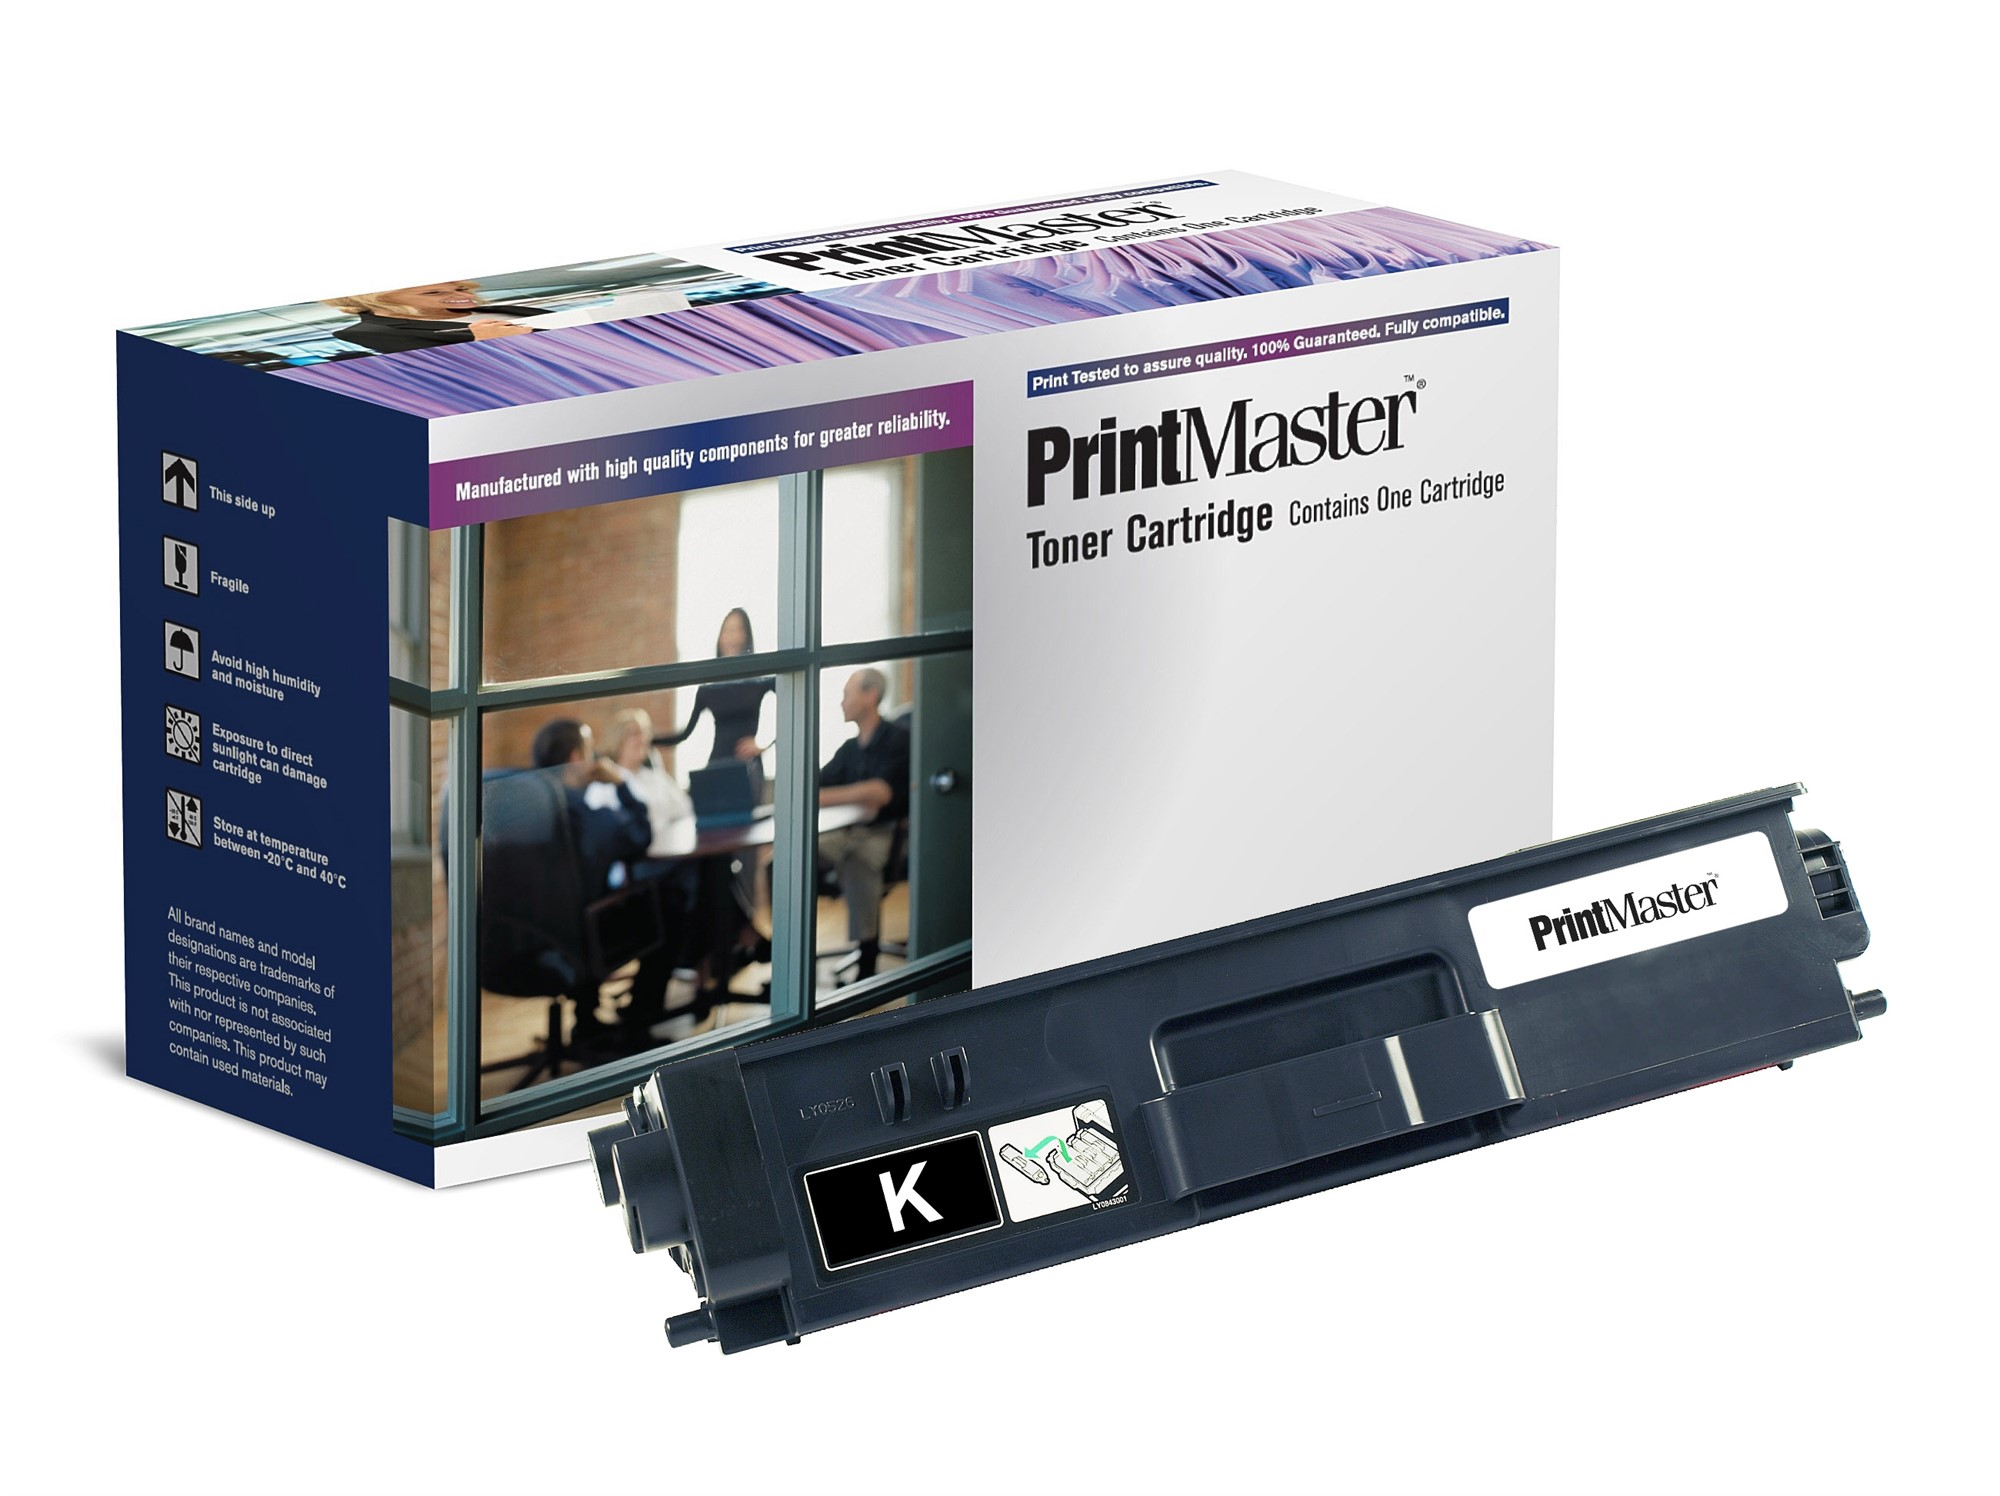 PrintMaster Brother MFC9970CDw/DCP9270 Black Toner 6K